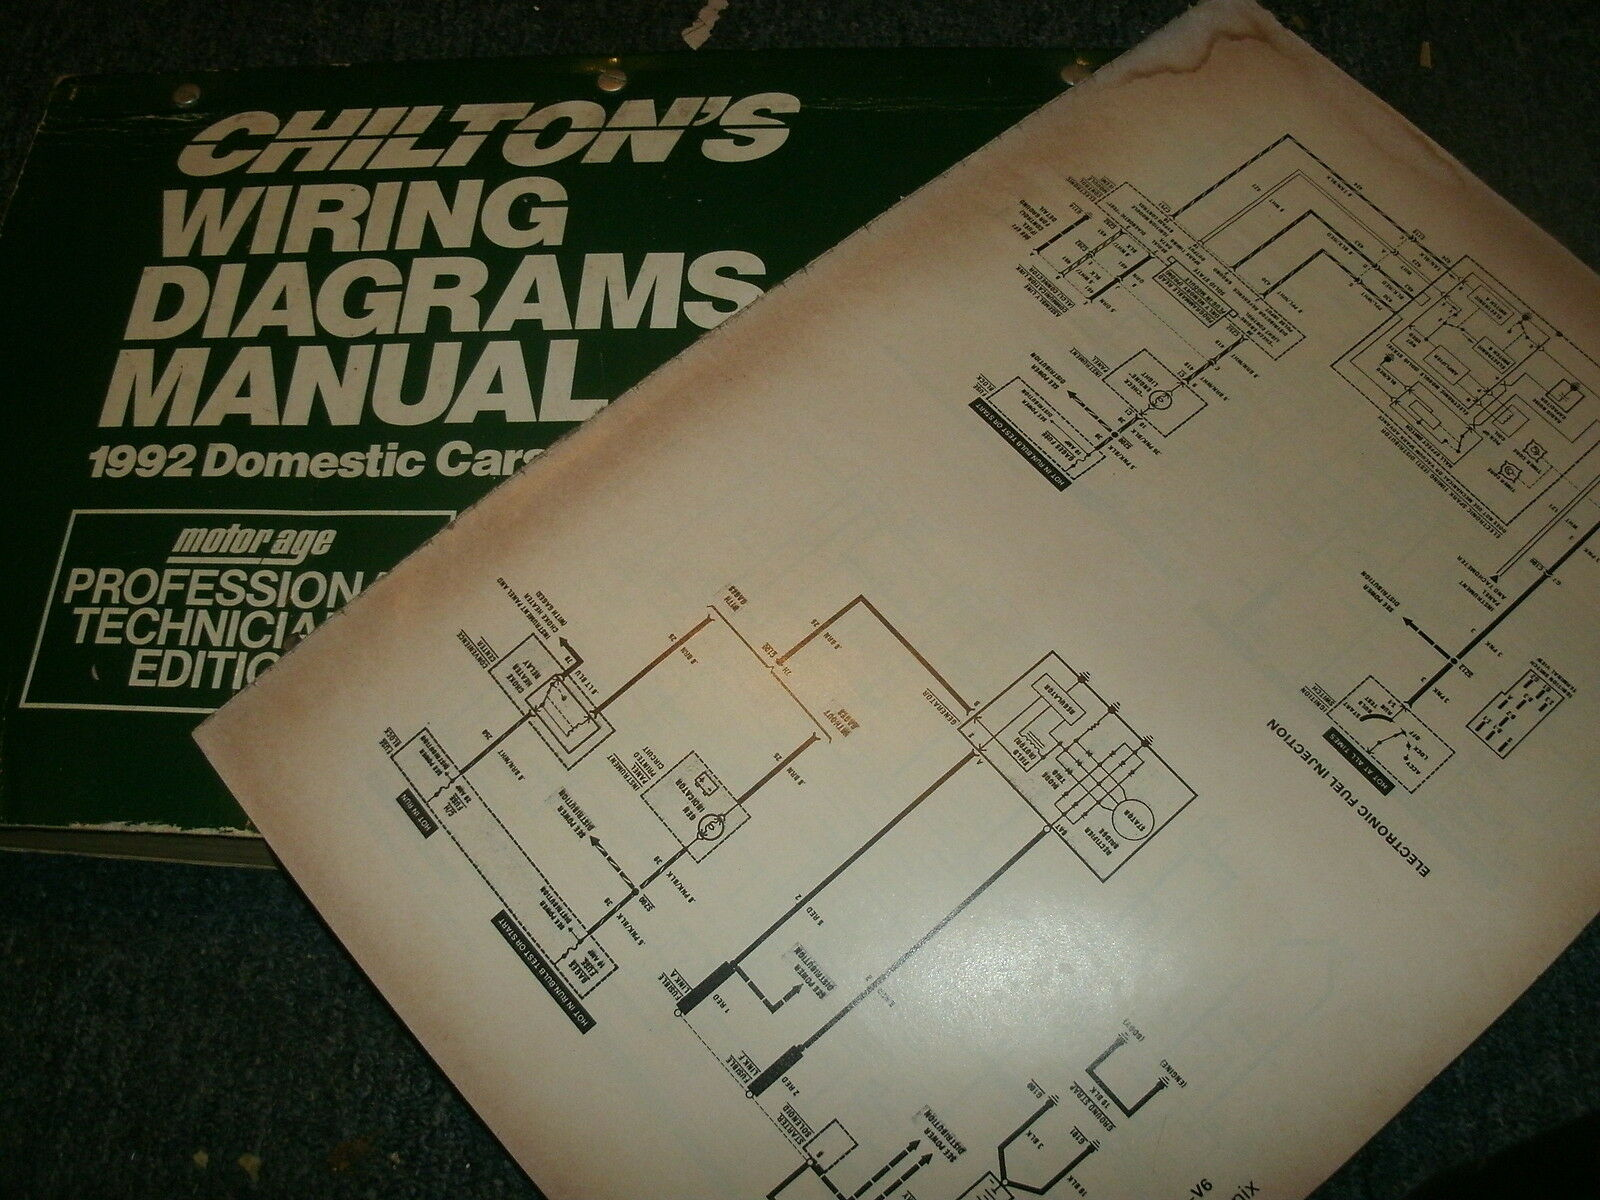 1992 Ford Thunderbird Mercury Cougar Wiring Diagrams Schematics Sheets Set  1 of 1 See More